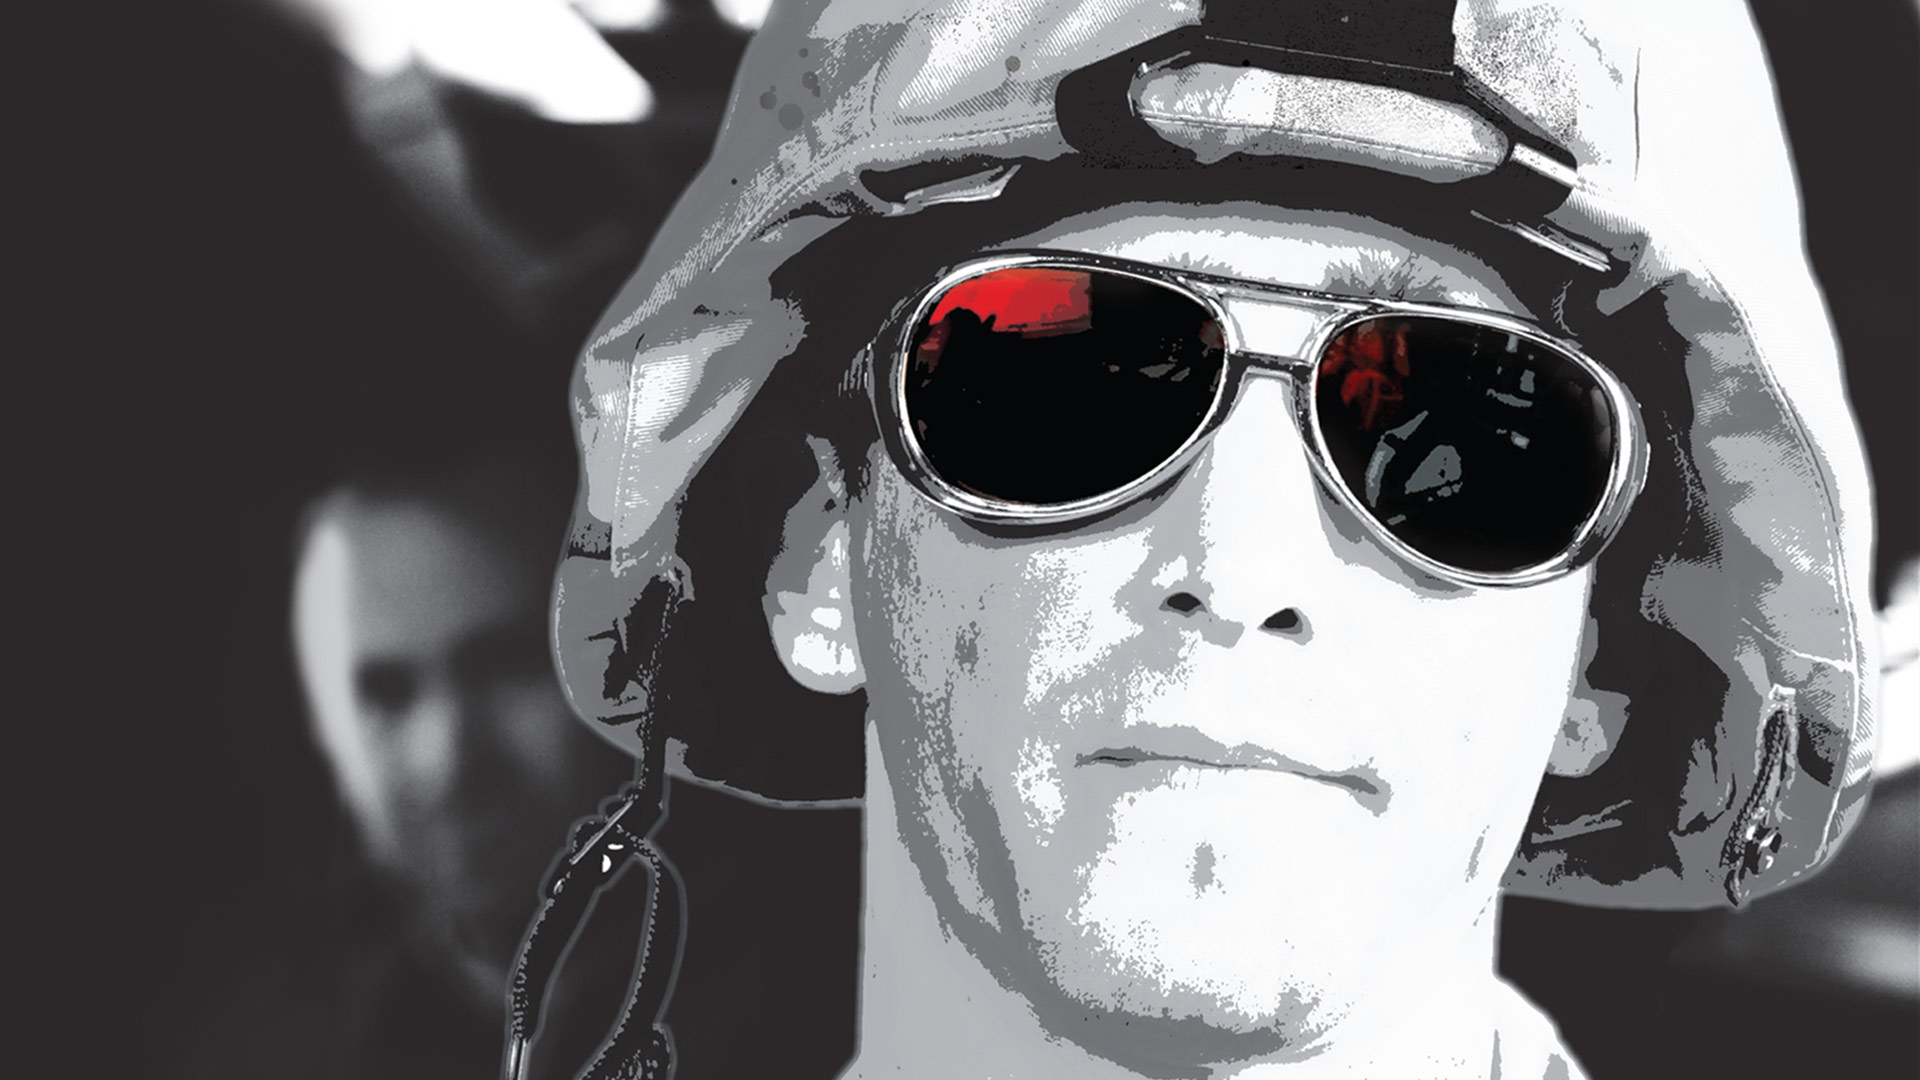 generation kill - official website for the hbo series